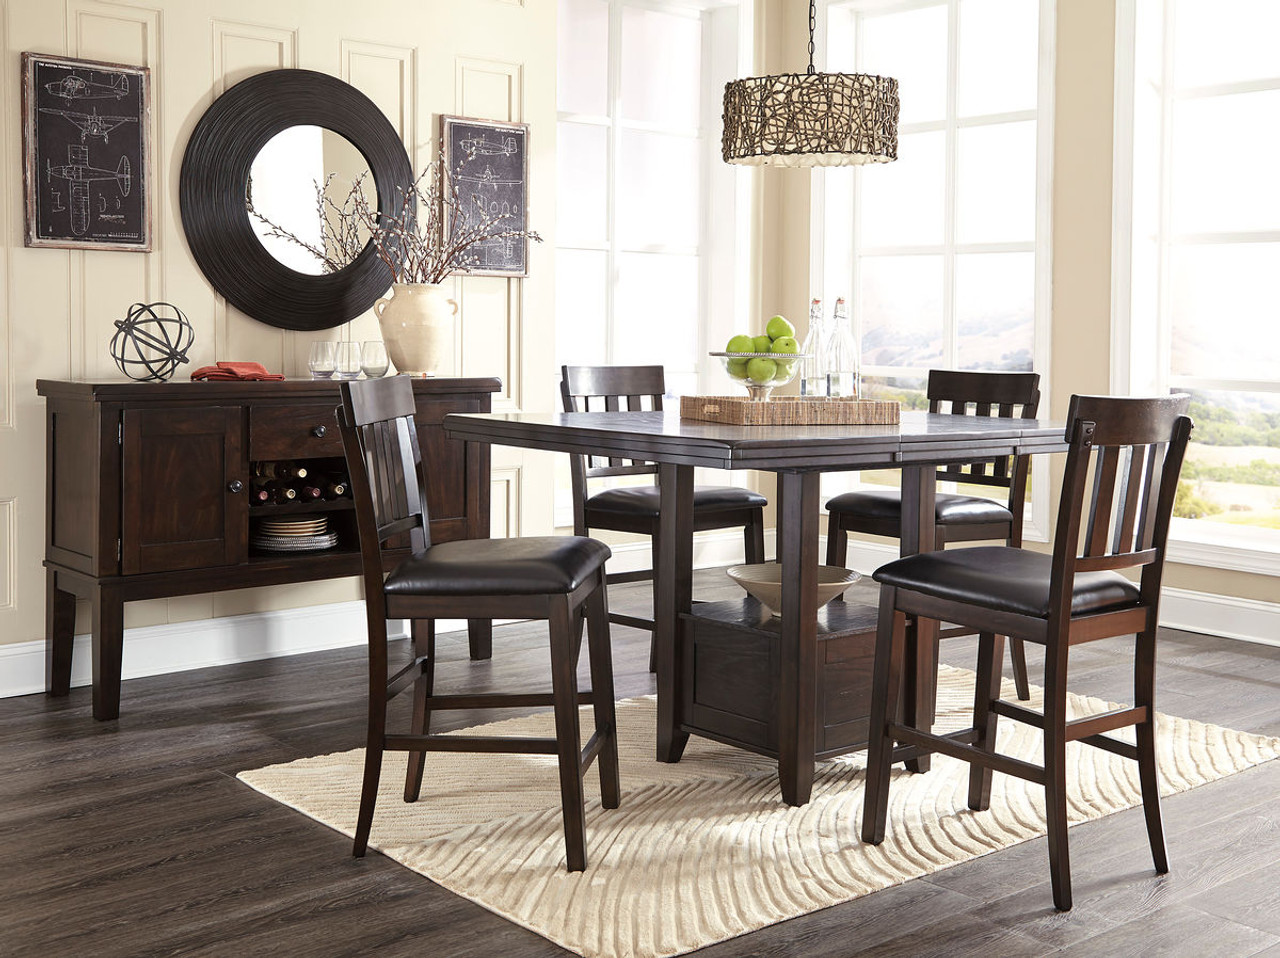 1c2261095037 Ashley Haddigan Dark Brown 6 Pc. Rectangular Dining Room Counter Extension  Table, 4 Upholstered